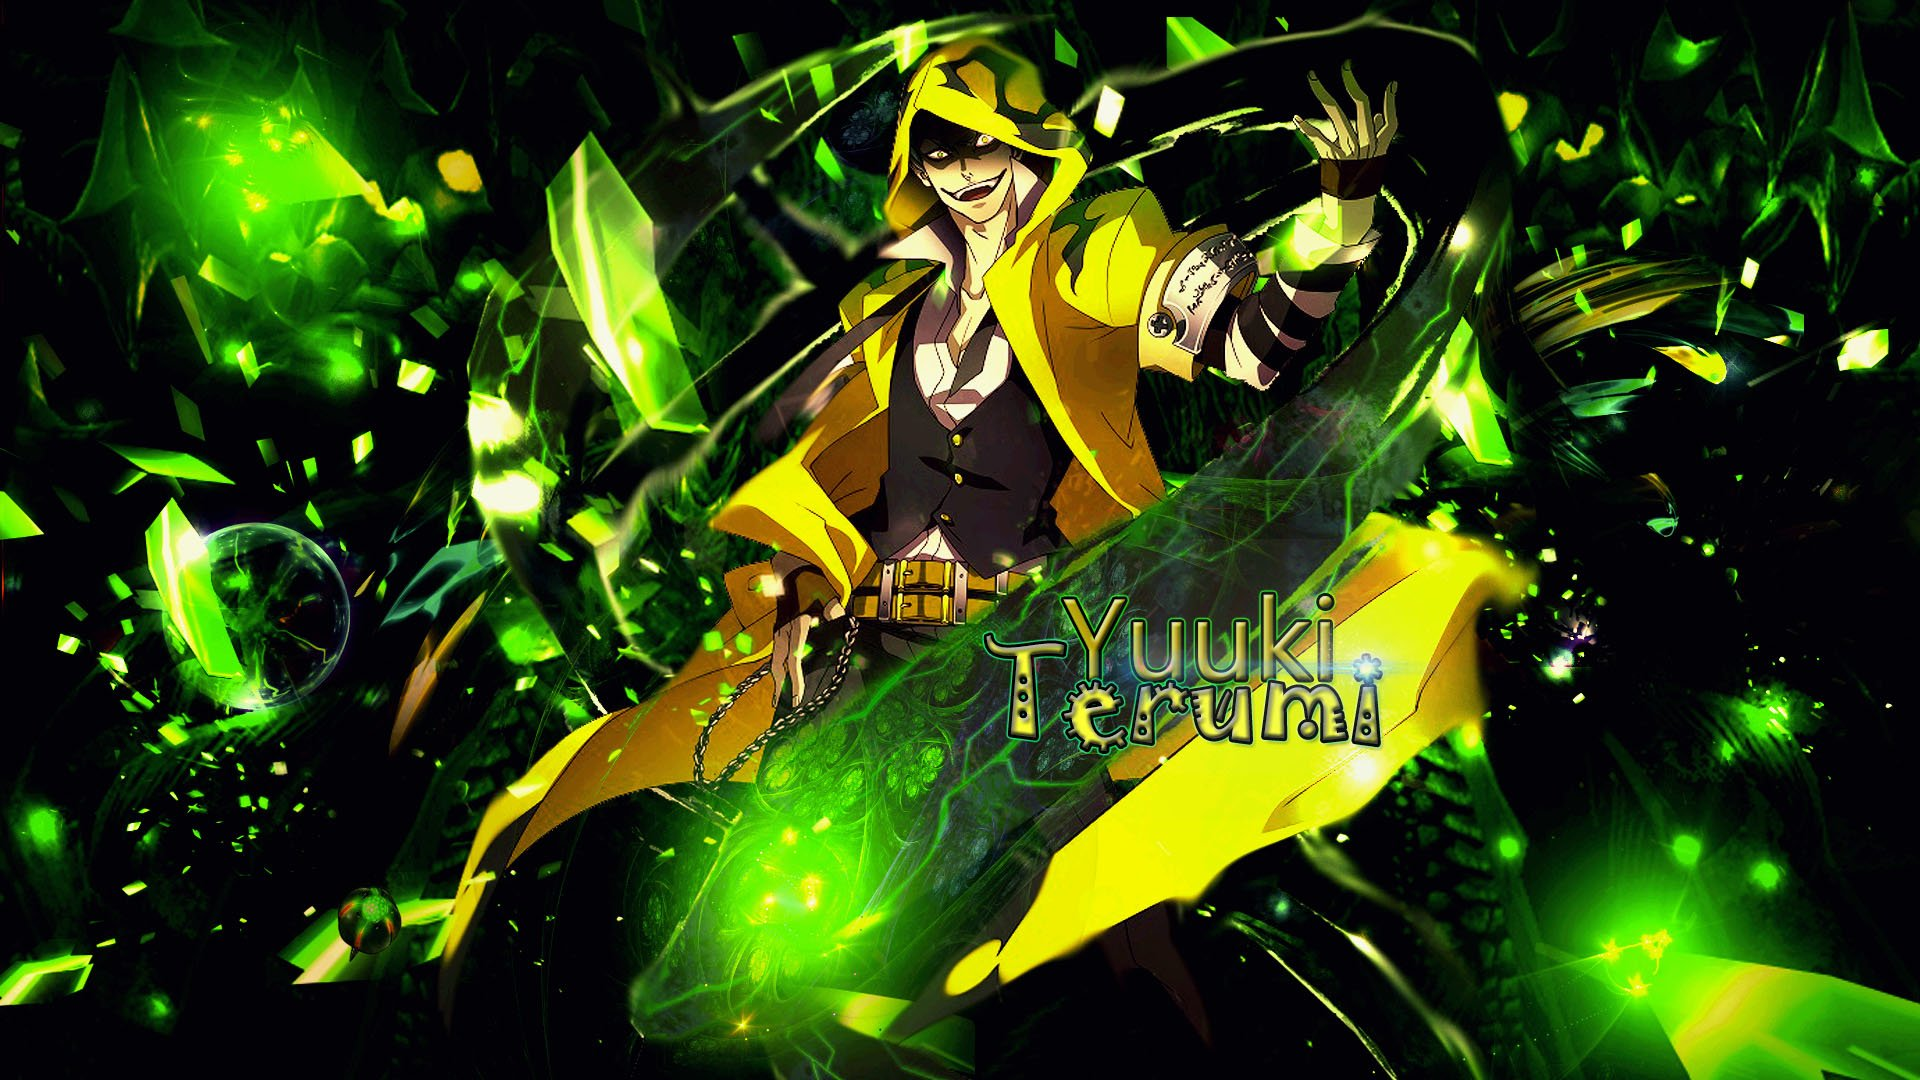 Anime - Blazblue  Yūki Terumi Anime Wallpaper